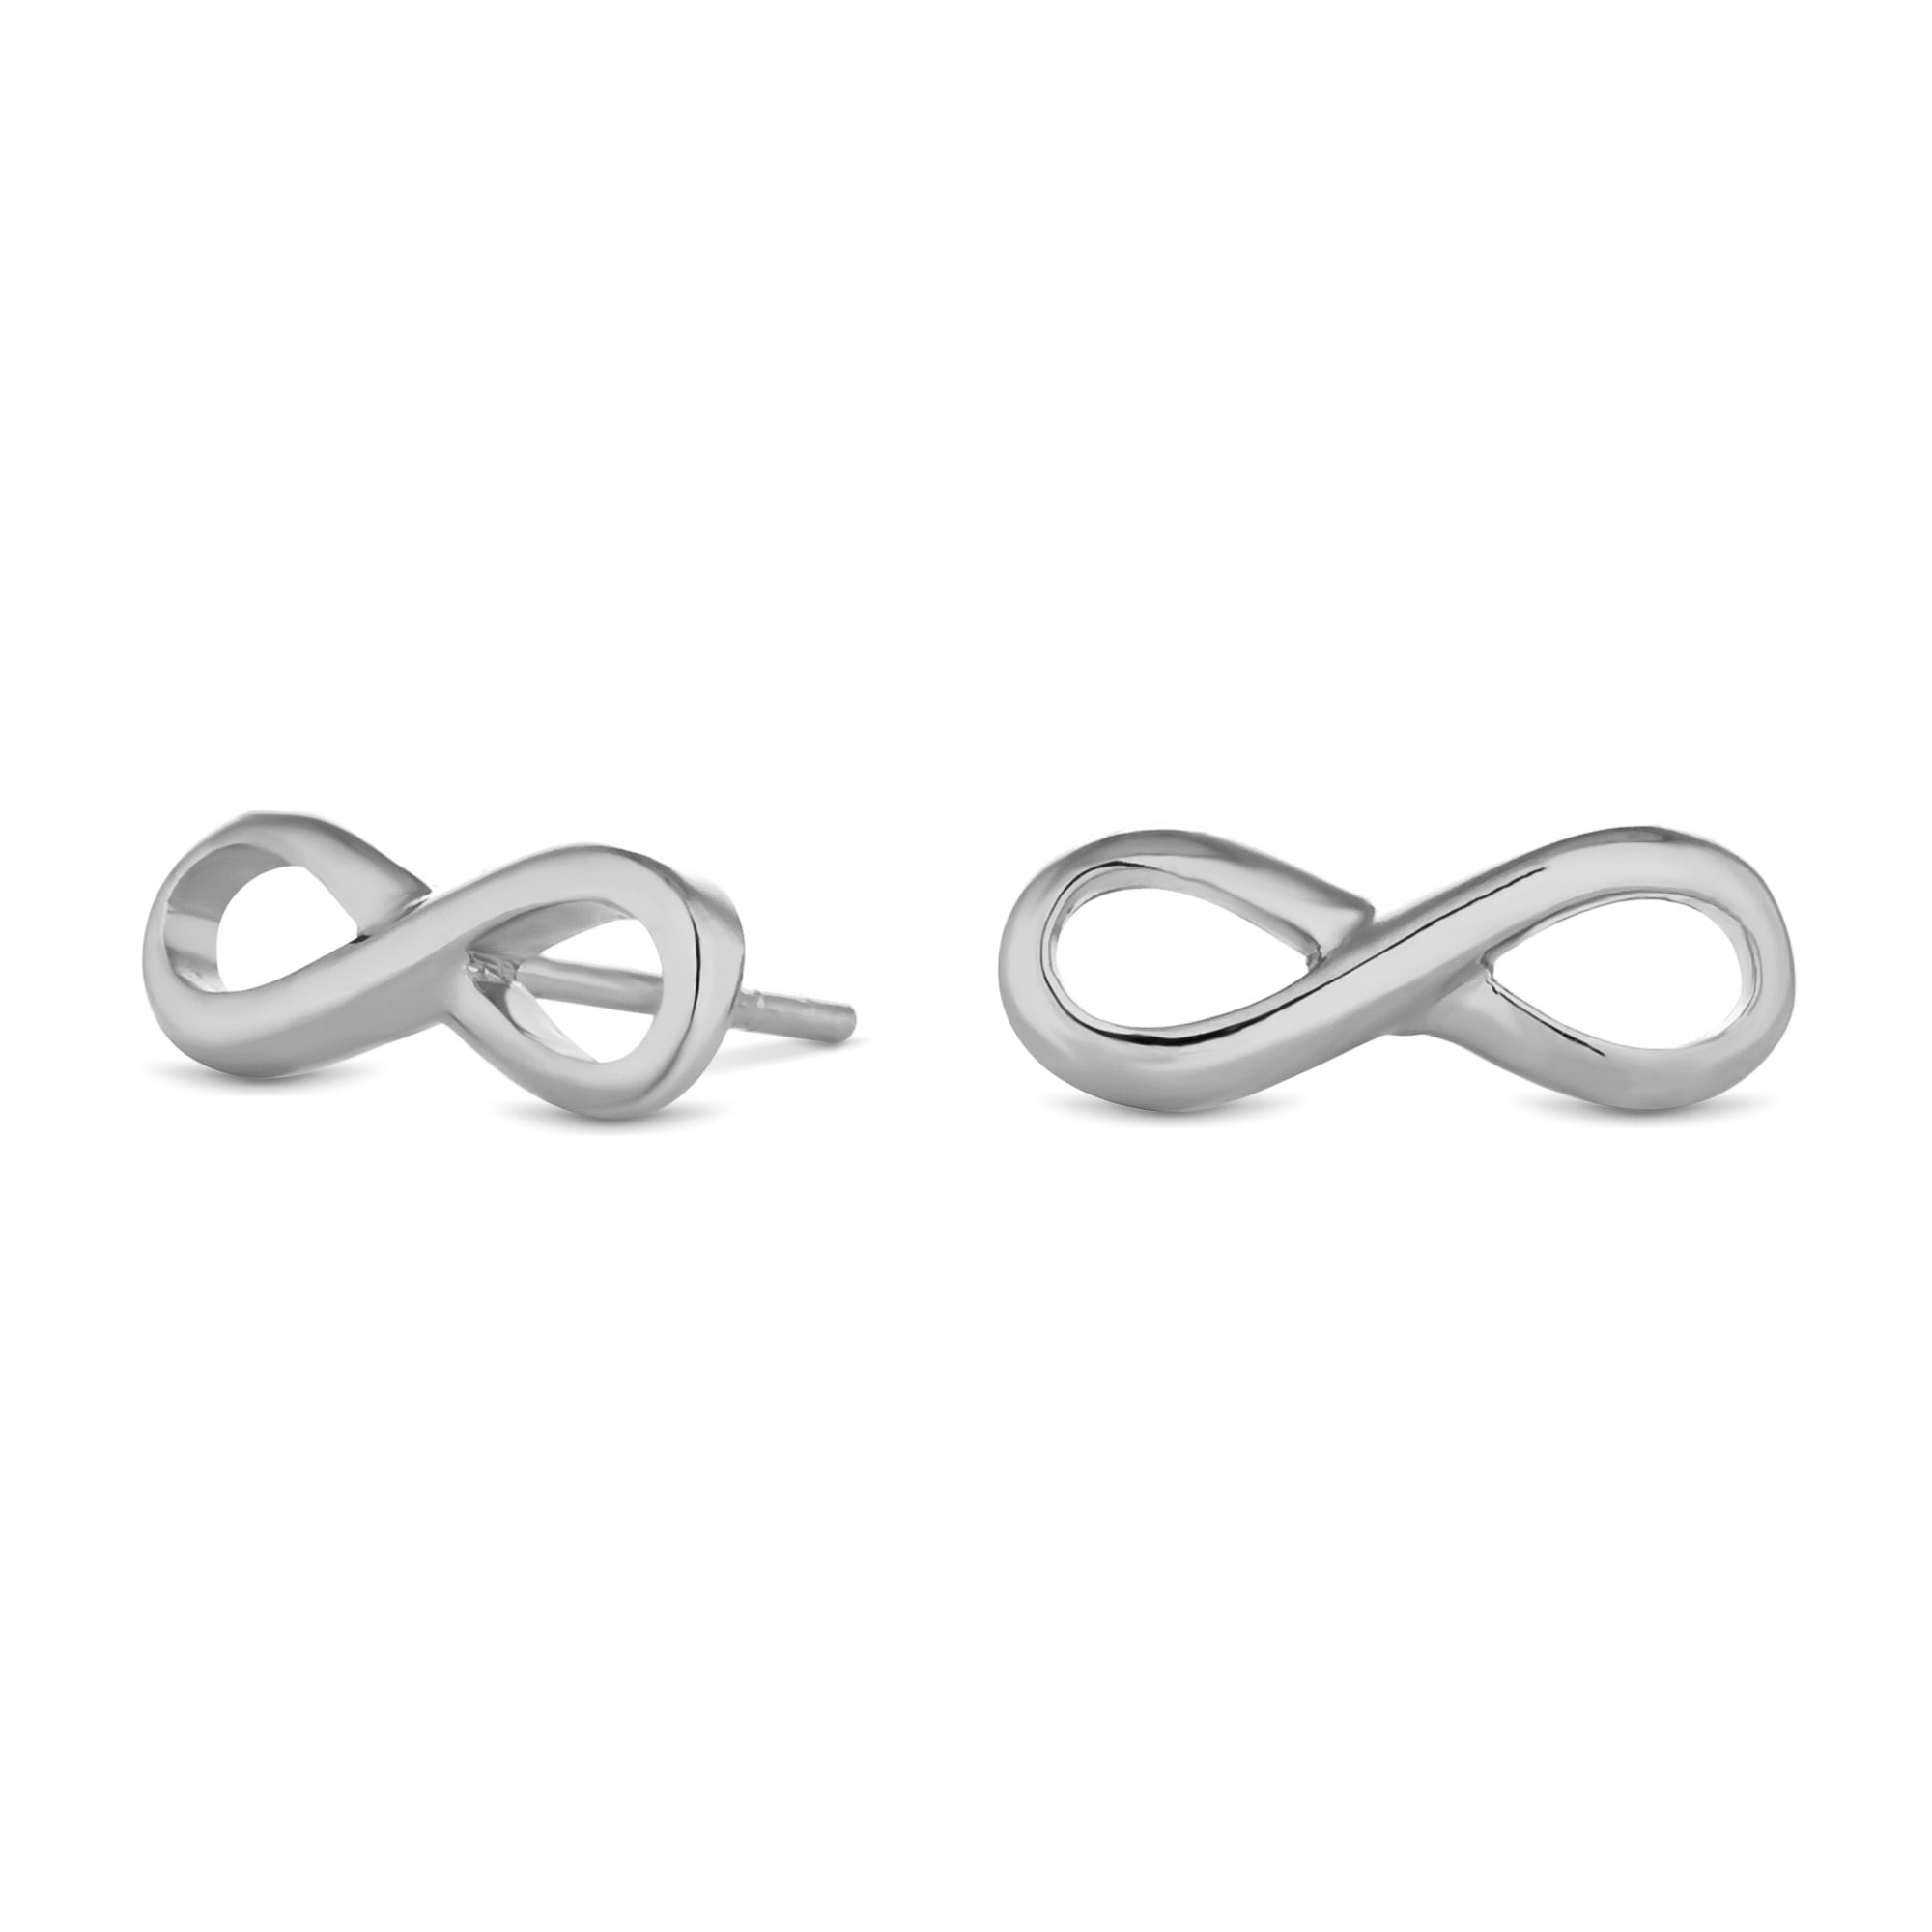 knot earrings silver sterling to free il shipping fullxfull listing infinity